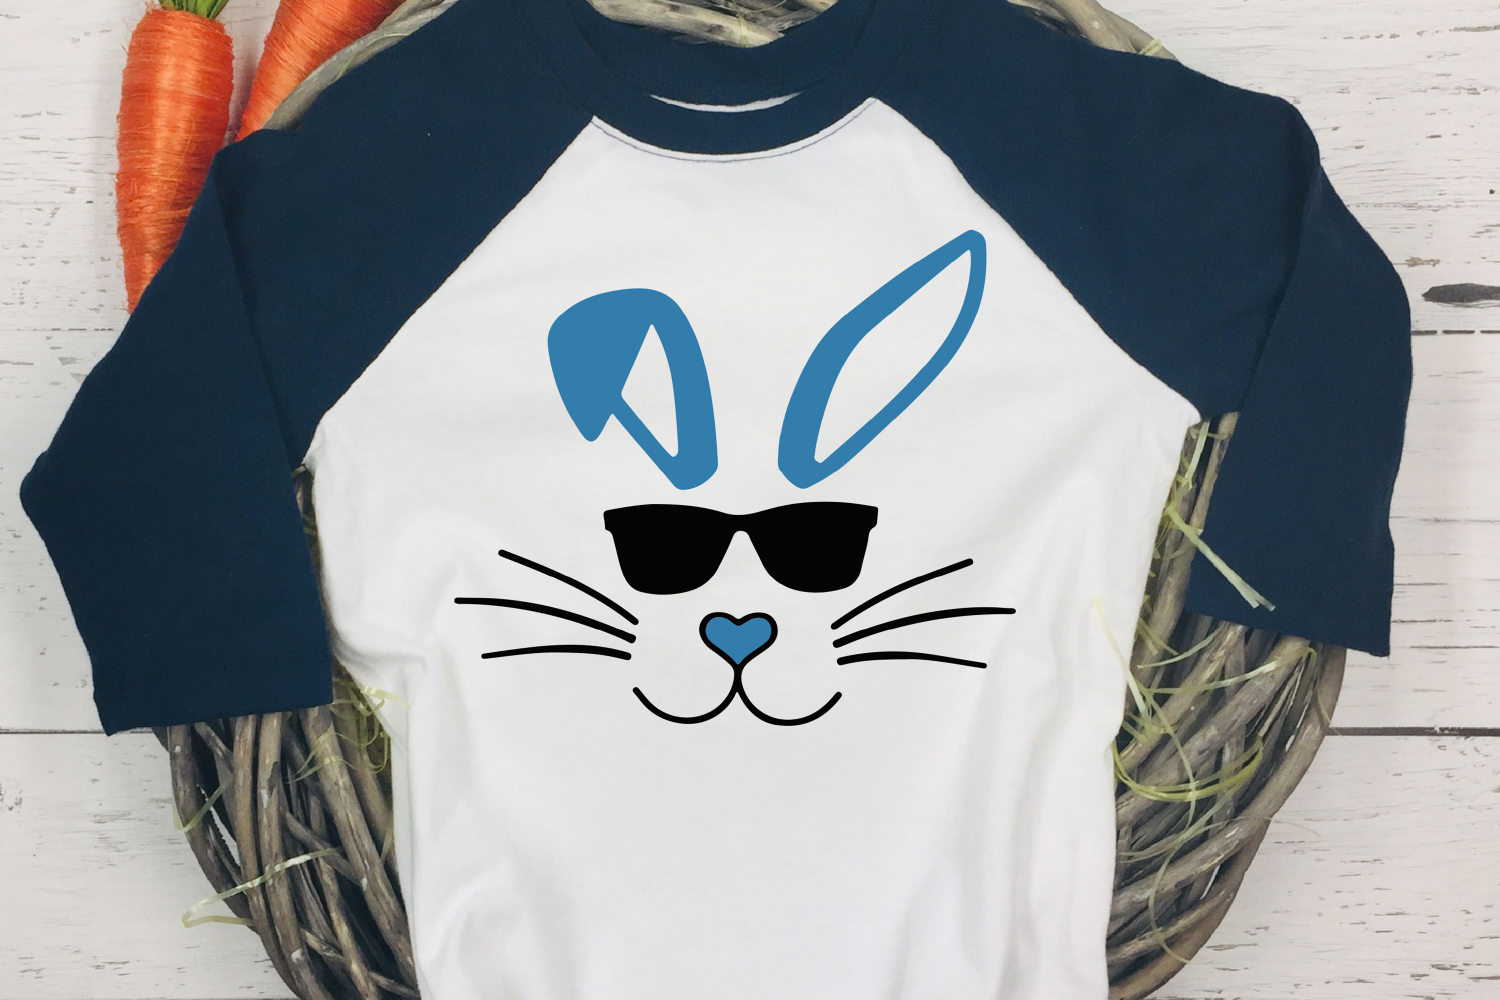 easter svg, bunny svg, easter bunny svg, bunny sunglasses example image 4